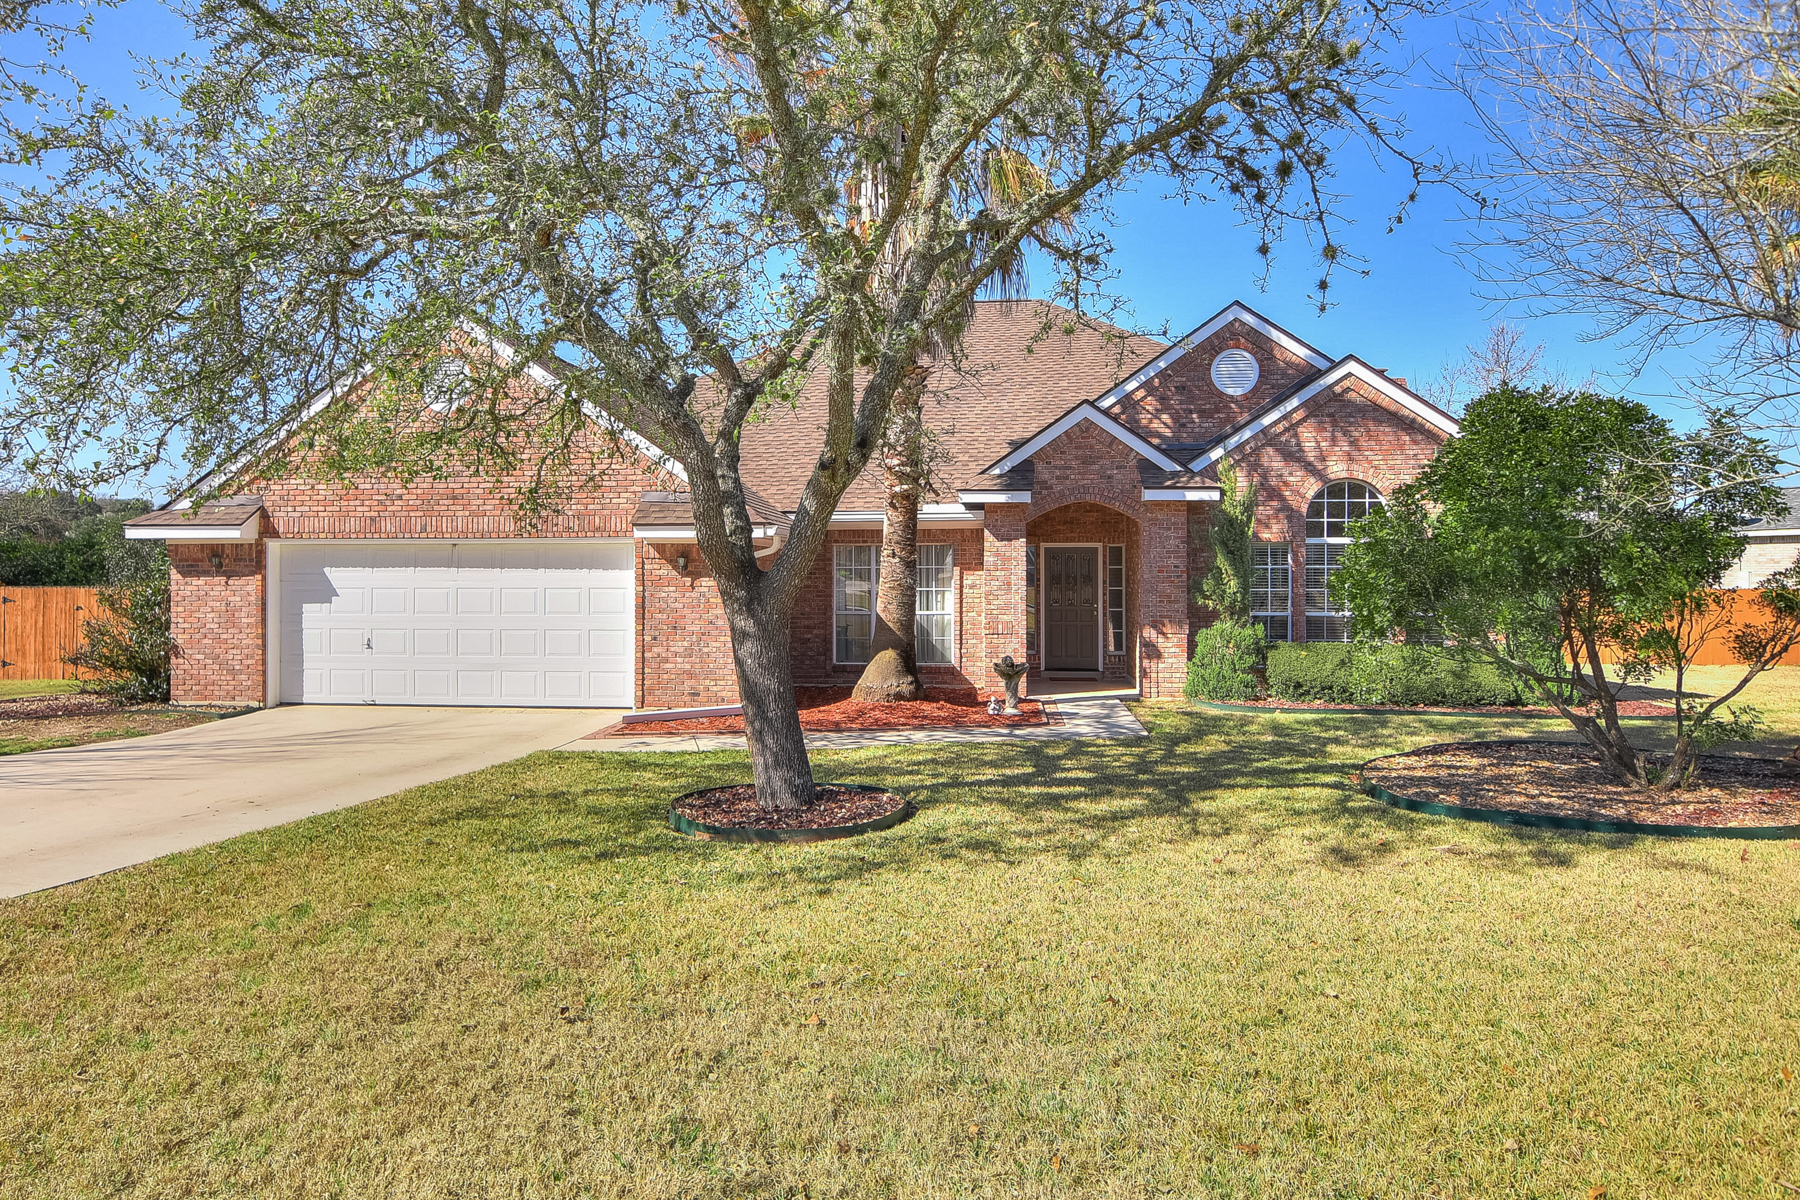 Casa Unifamiliar por un Venta en Charming One-Story Gem in Fair Oaks Ranch 29311 Mandetta Dr Fair Oaks Ranch, Texas 78015 Estados Unidos